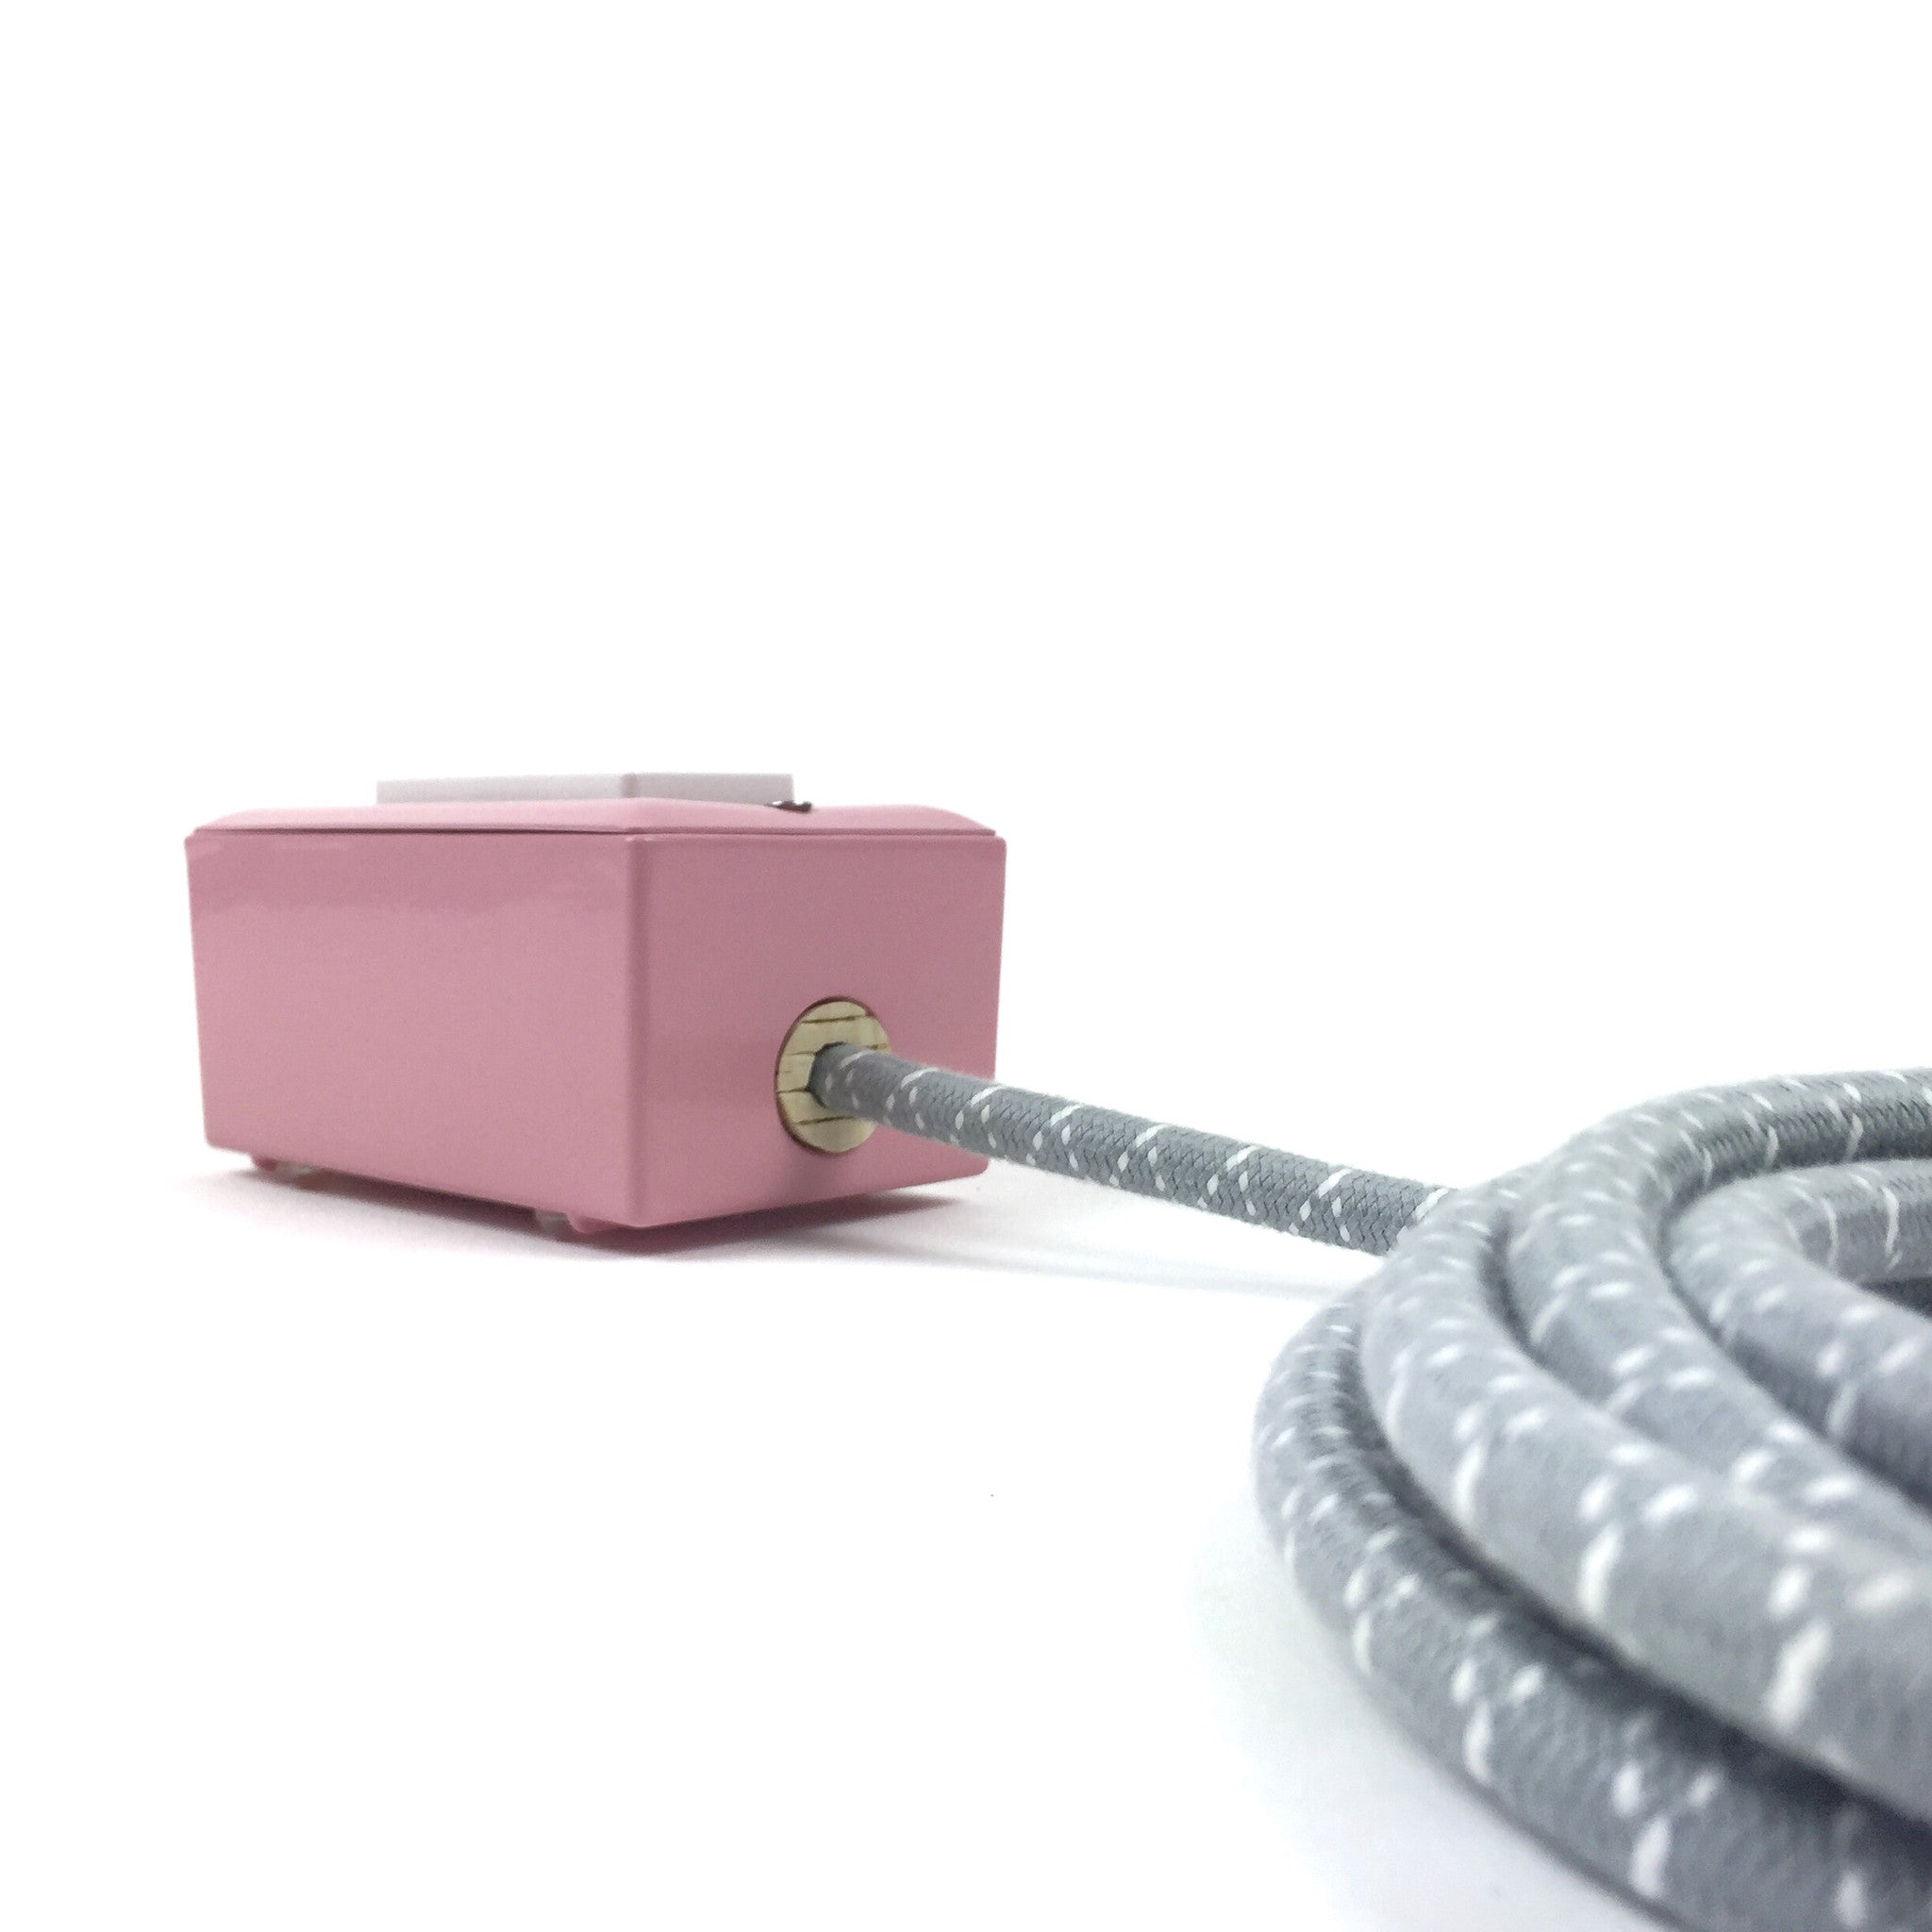 The First Smart Chip Extension Cord - 12' Extō Dual-USB, Dual-Outlet - Candy Pink